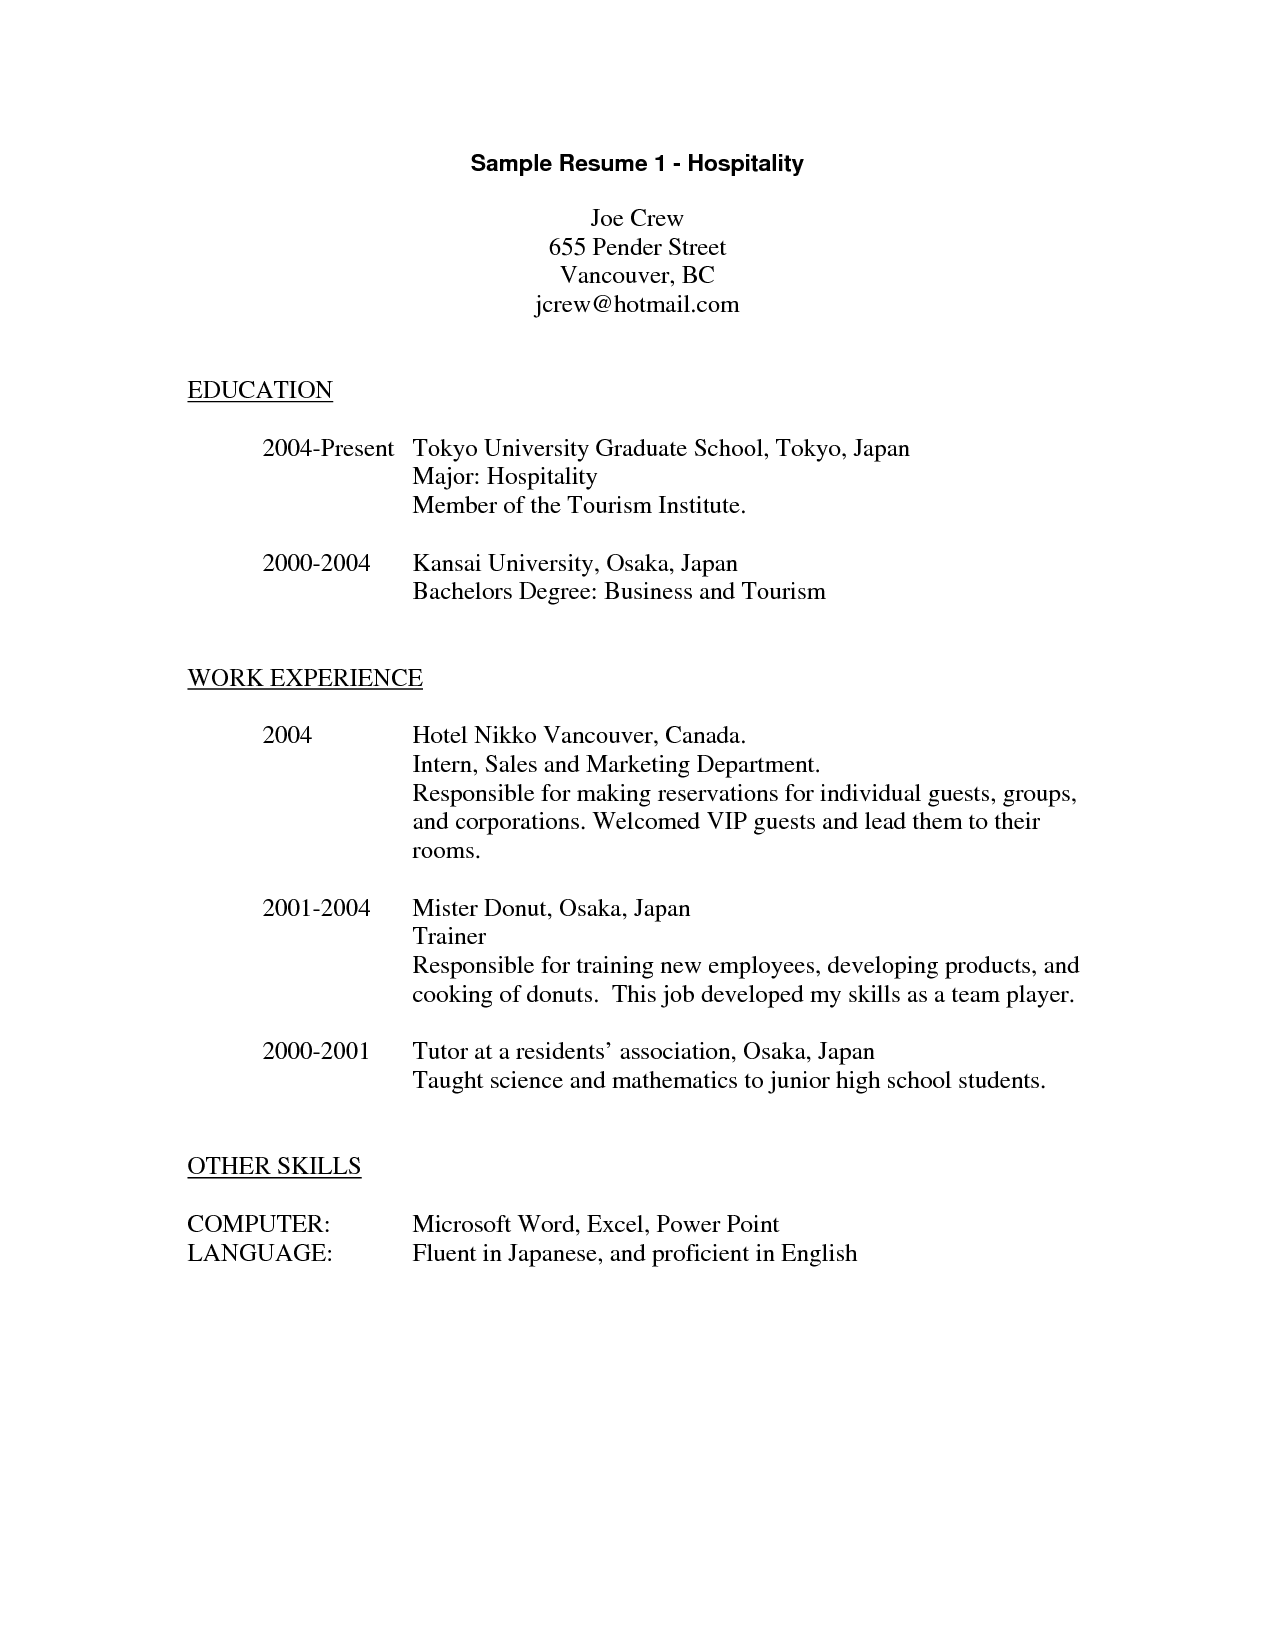 sample resume for hospitality industry sample resume for sample resume for hospitality industry sample resume for hospitality industry sample resume for hospitality jobs sample